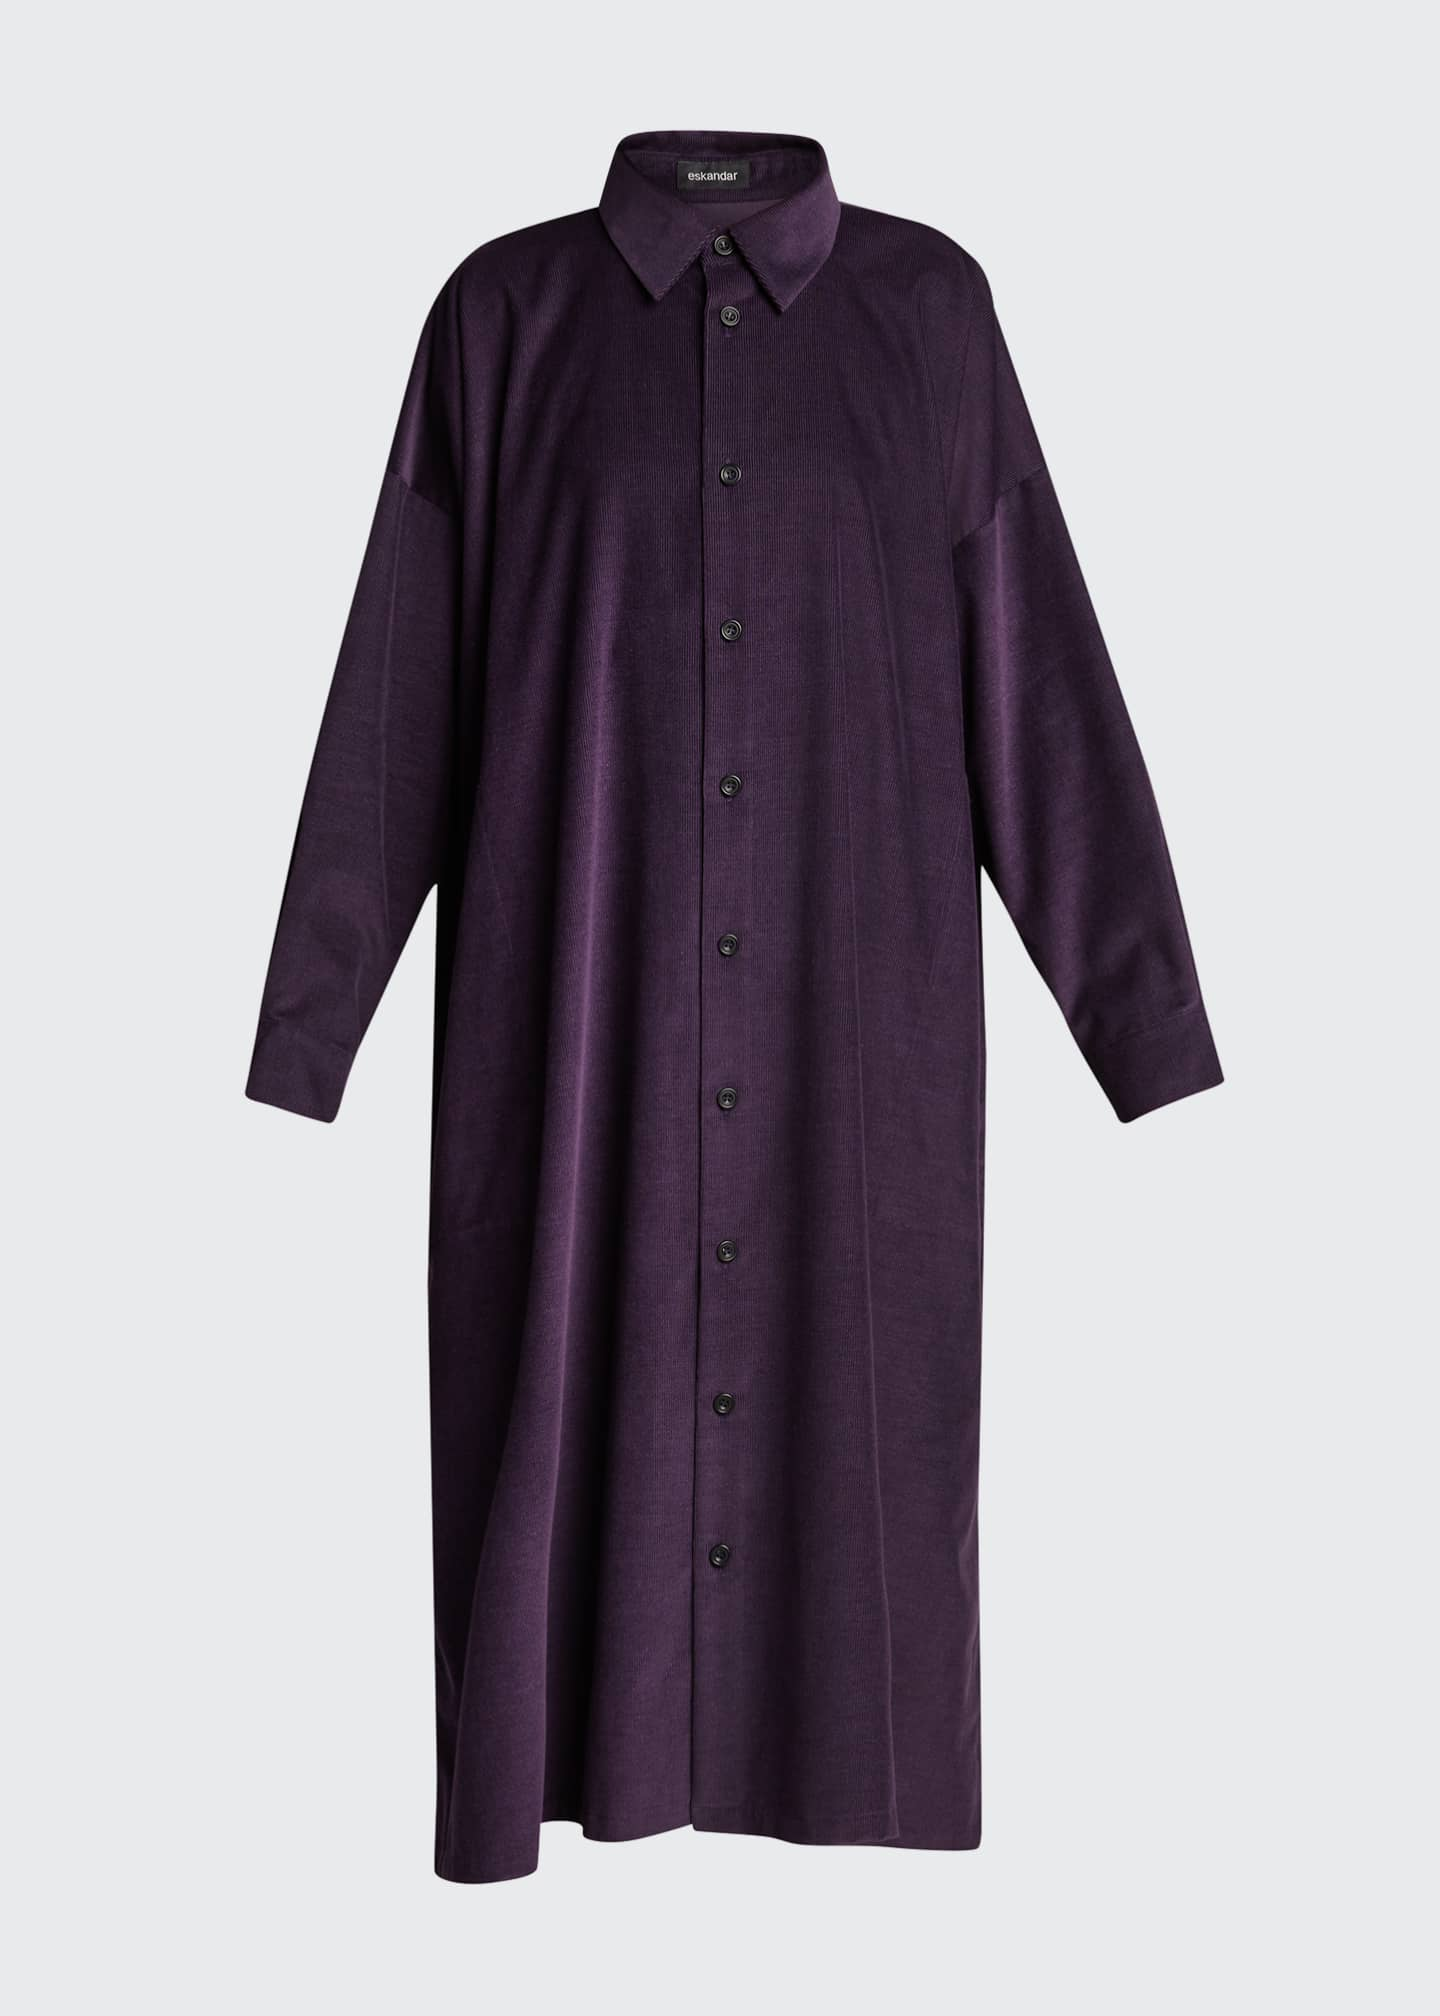 Image 5 of 5: Wide Button-Down Cotton A-Line Dress